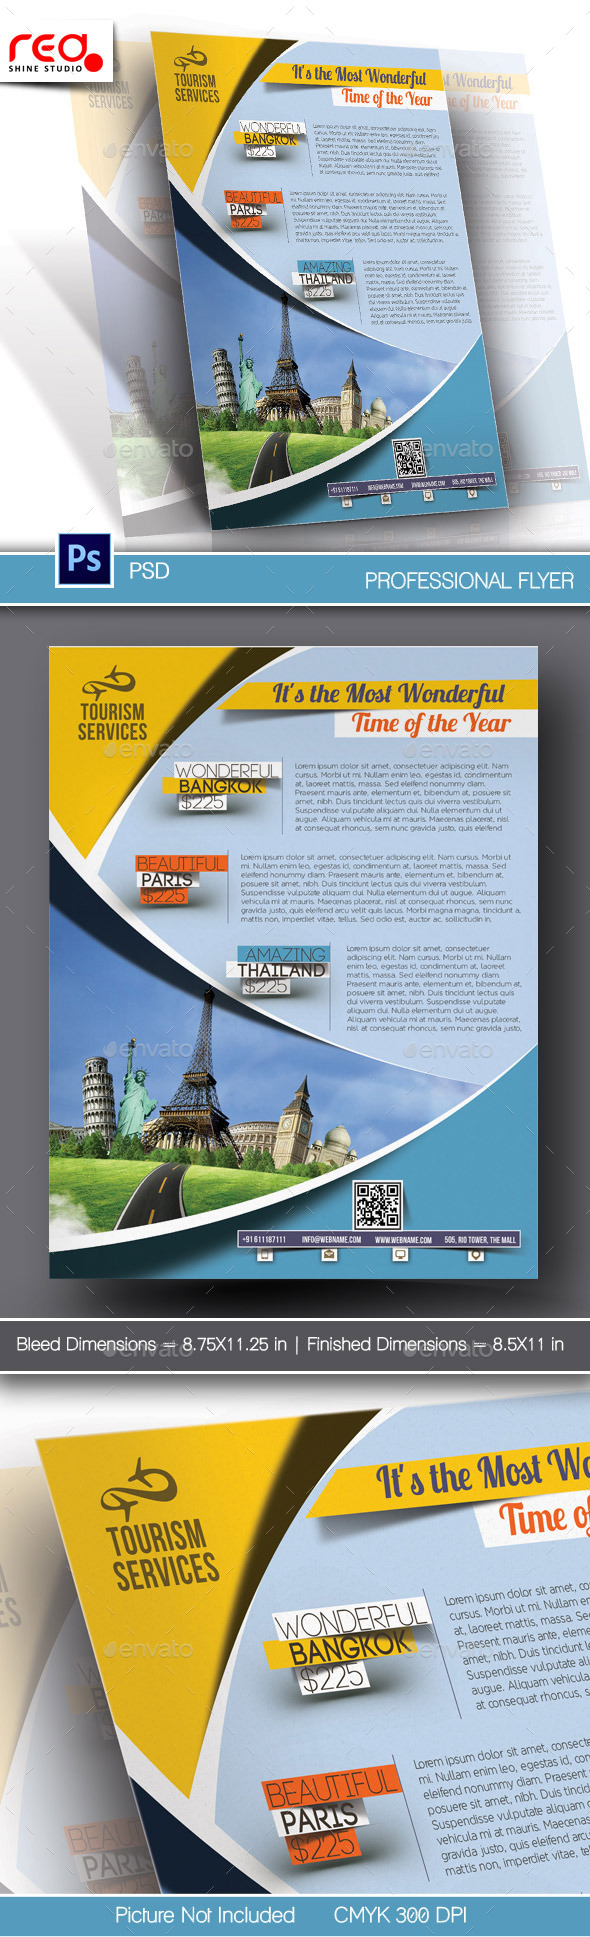 GraphicRiver Holiday Travel Flyer & Poster Template 10700853